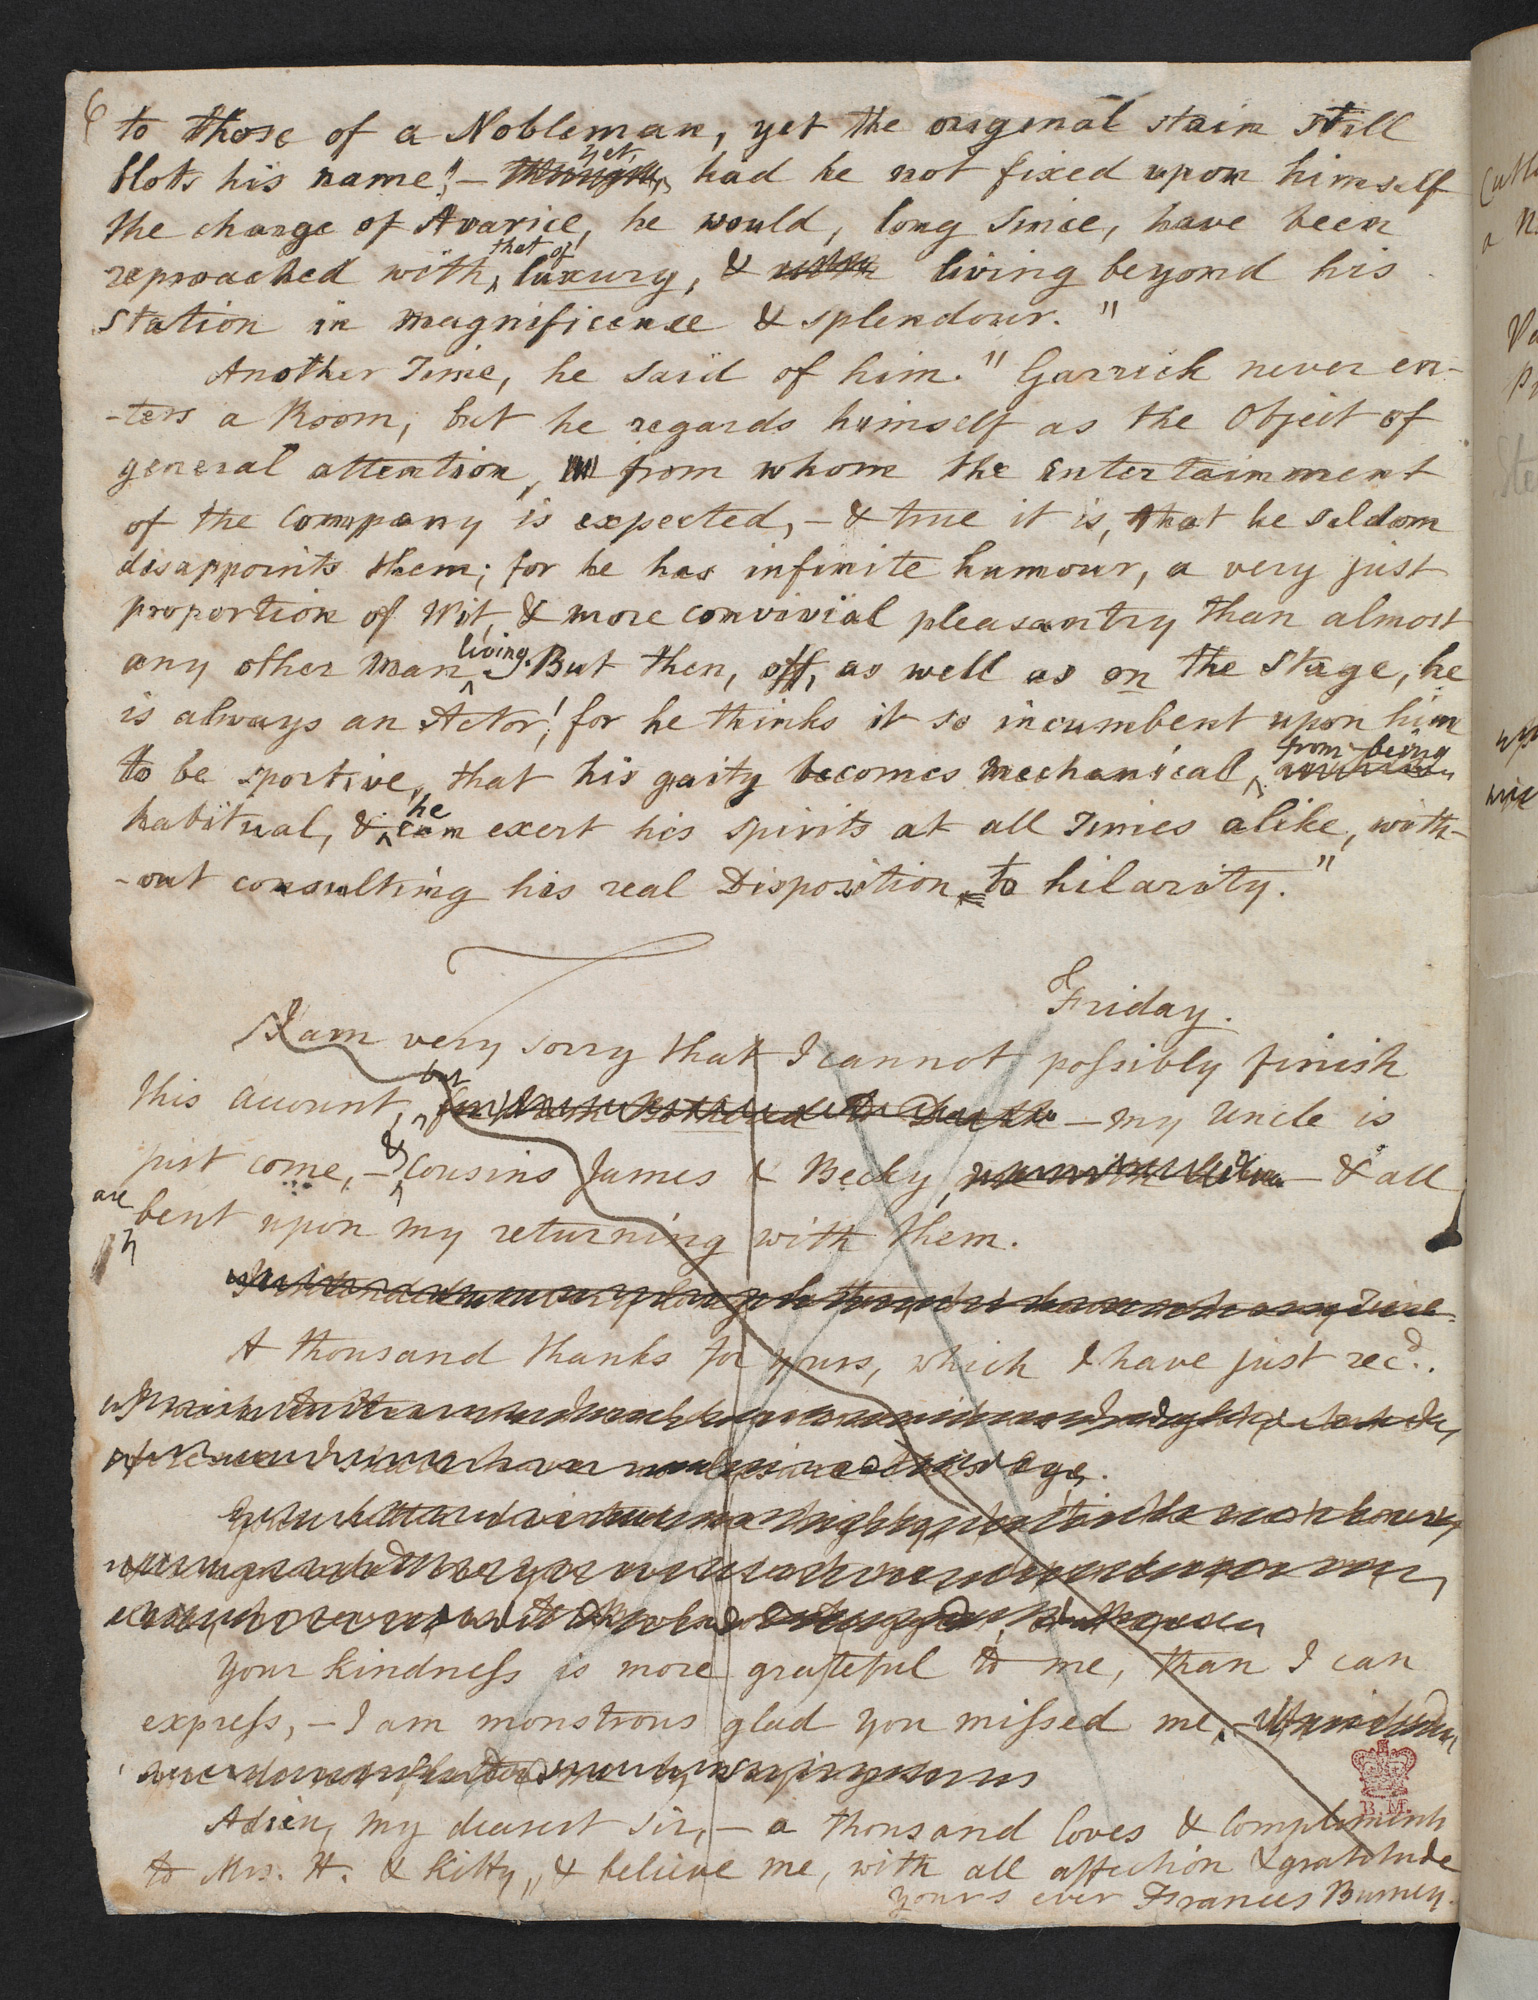 Letters from Frances Burney to Samuel Crisp, one defending the single life and the other describing Samuel Johnson